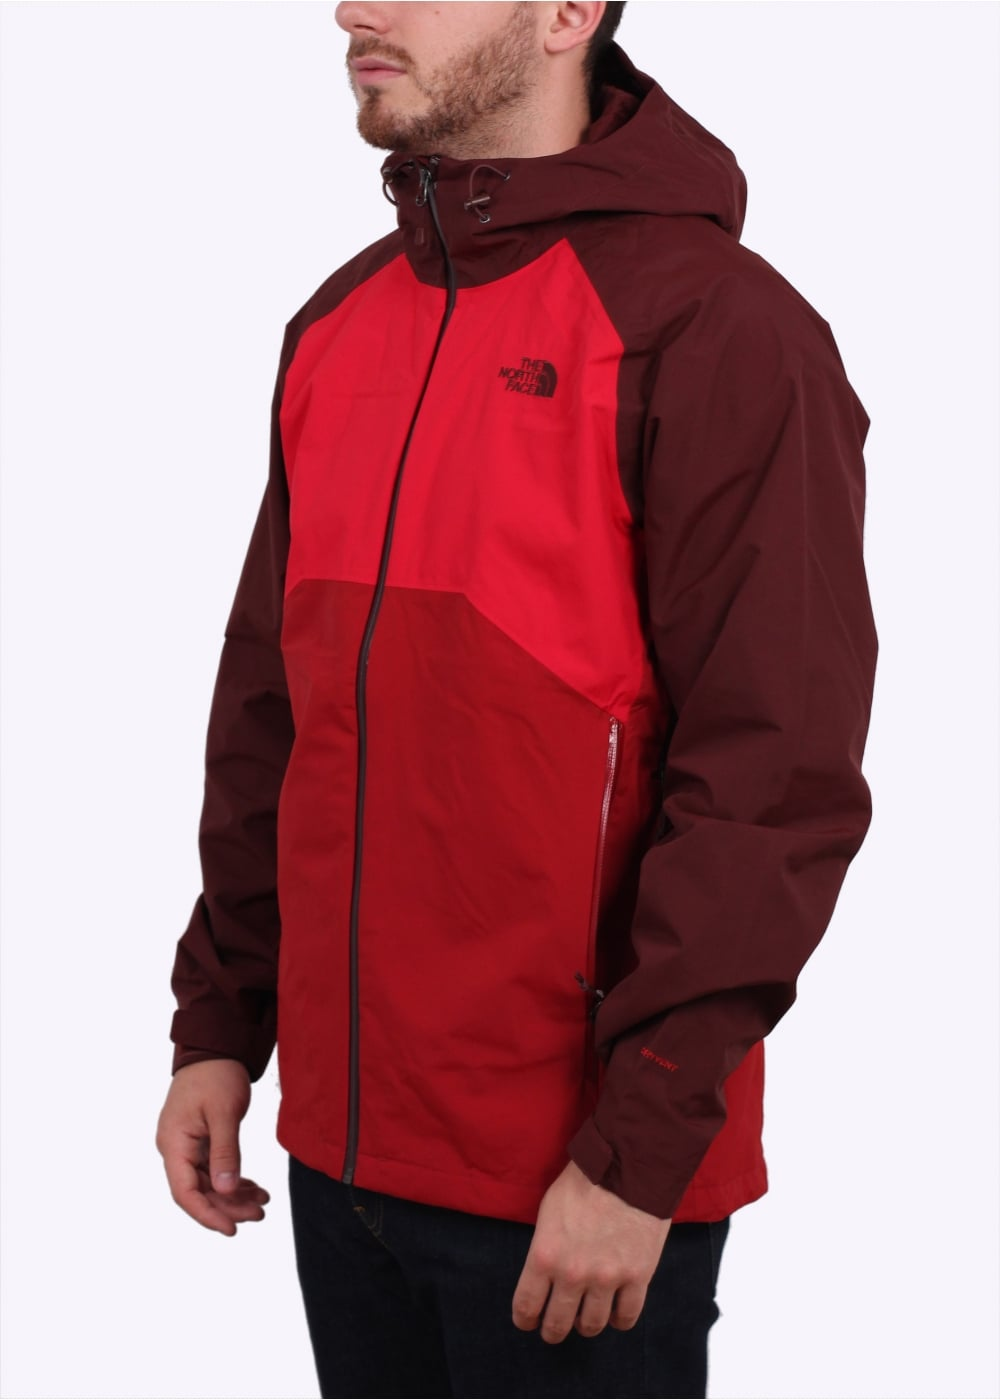 483fe48e6f0 ... australia womens stratos jacket the north face stratos jacket cardinal  red 929cc 6548e ...